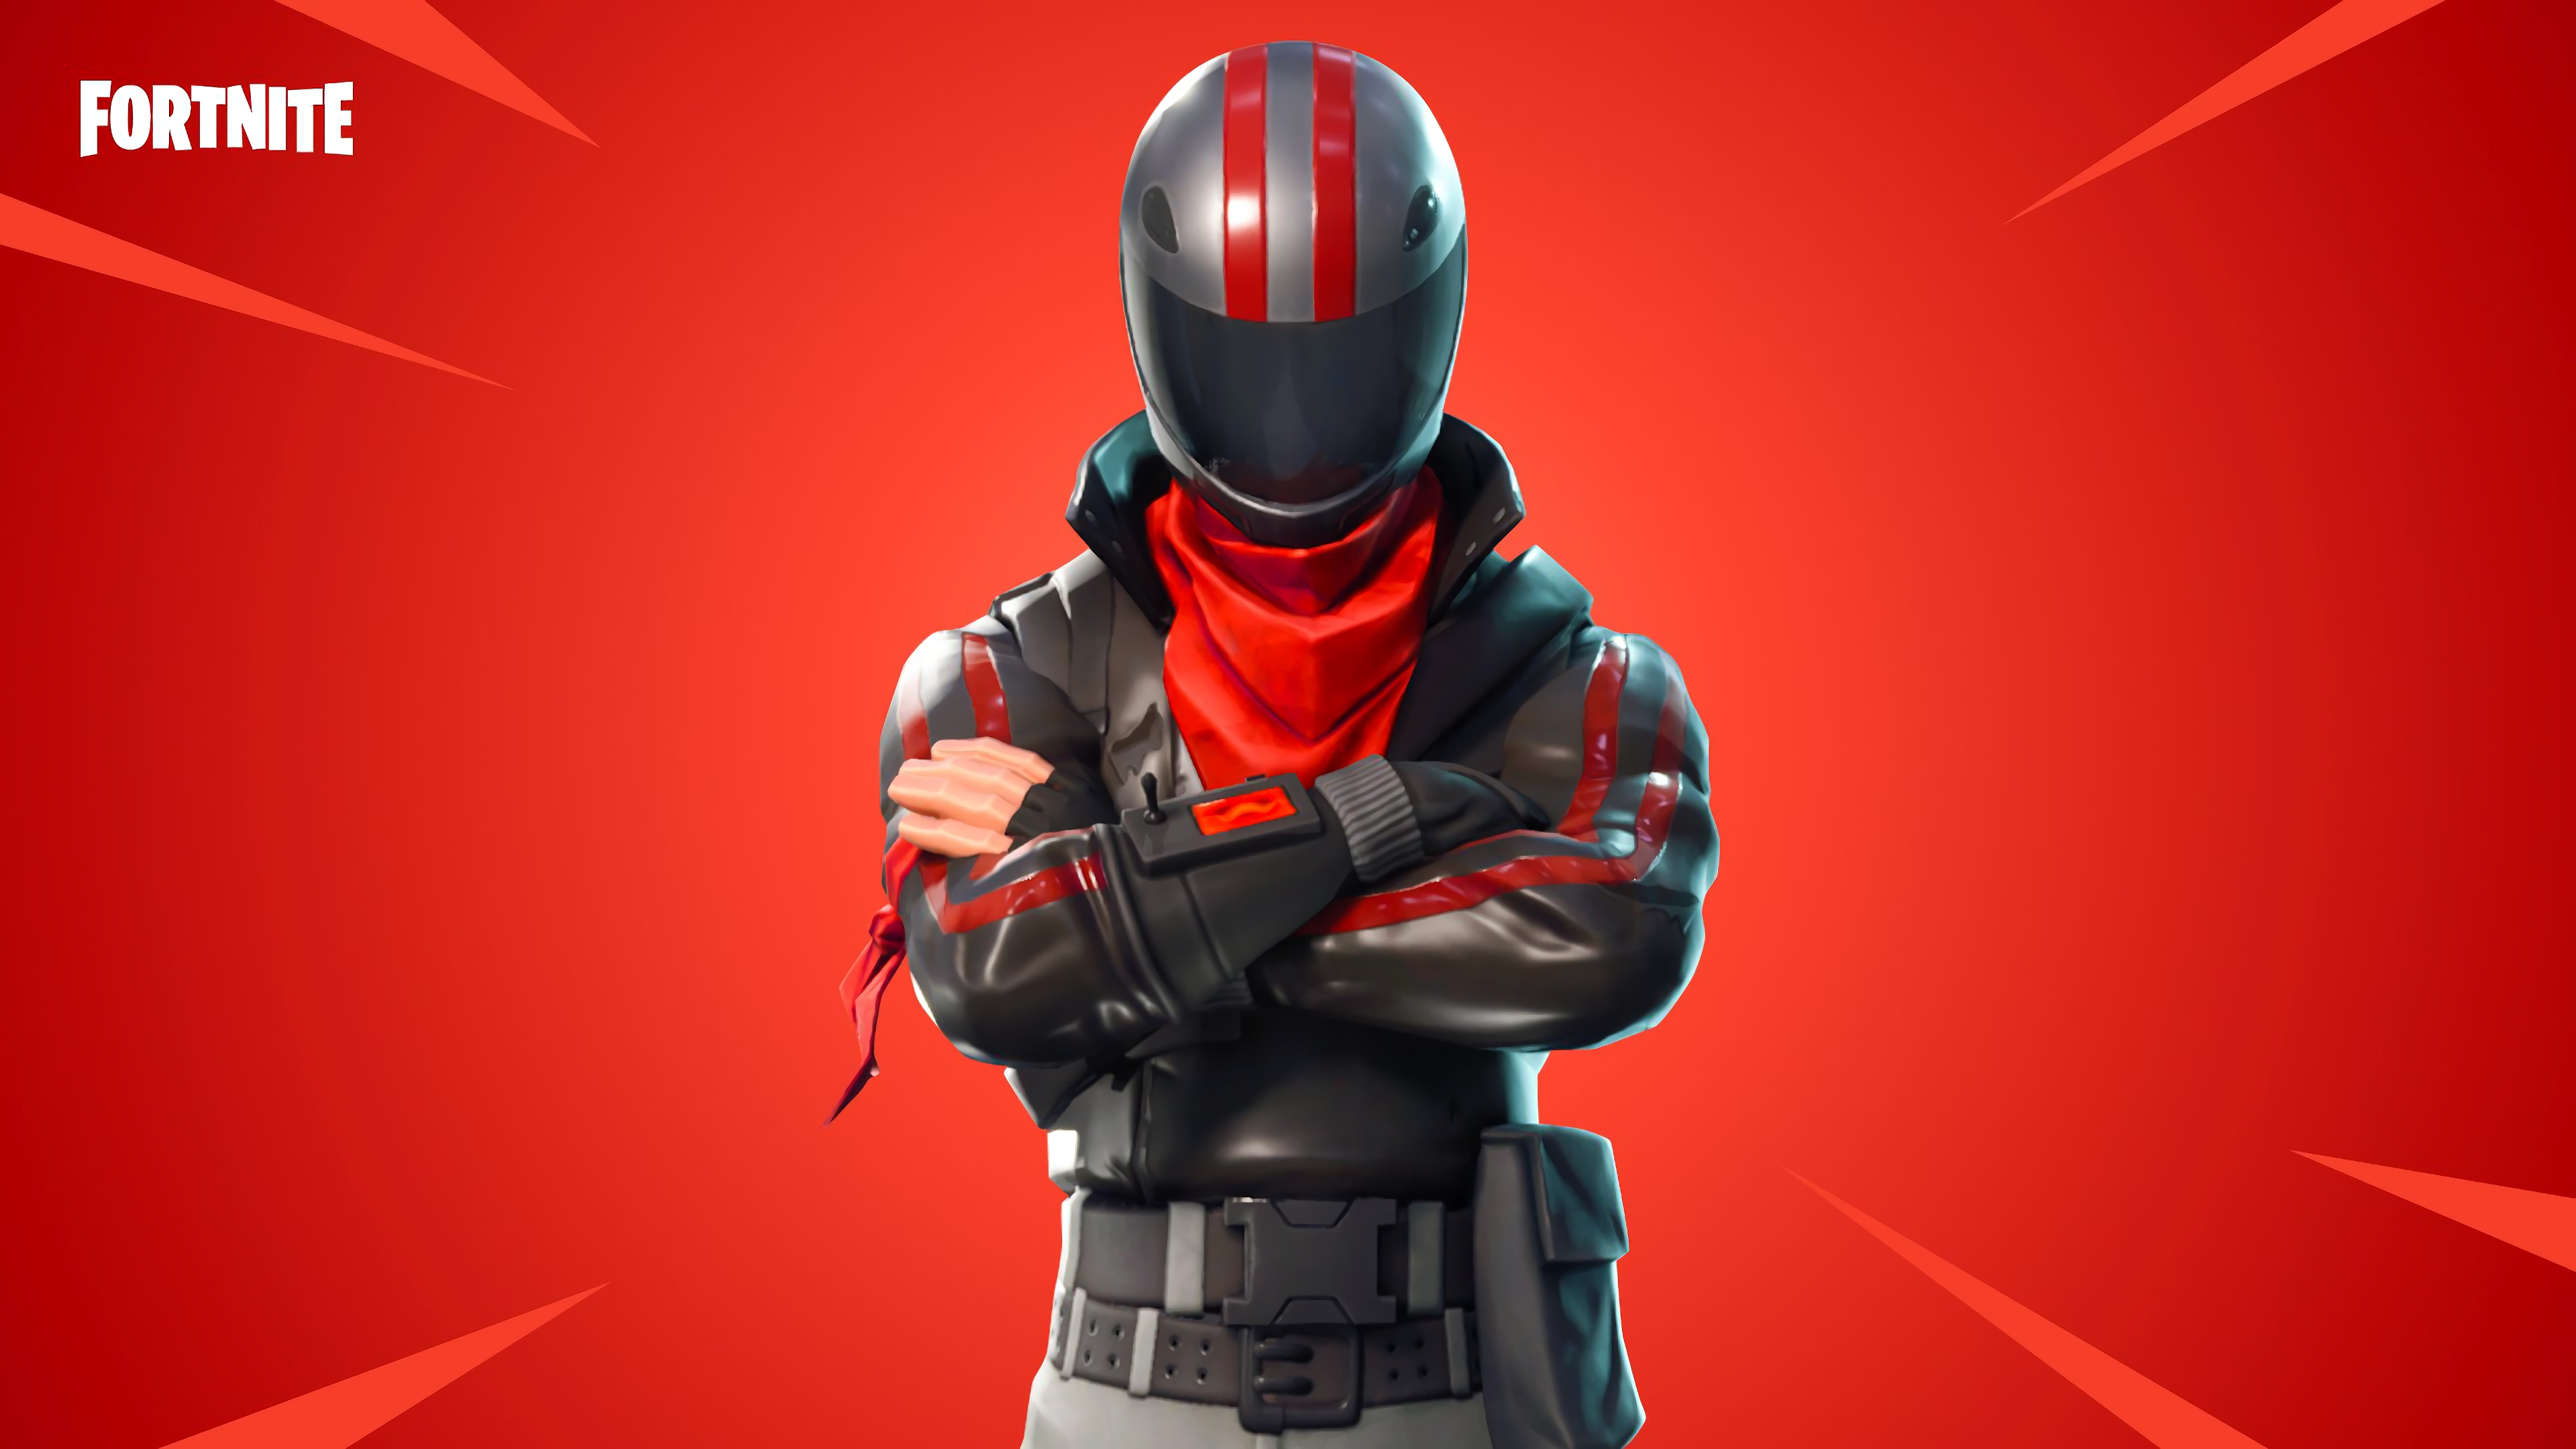 Fortnite Wallpaper Battle Royale Burnout Skin 4040 Wallpapers and 3840x2160